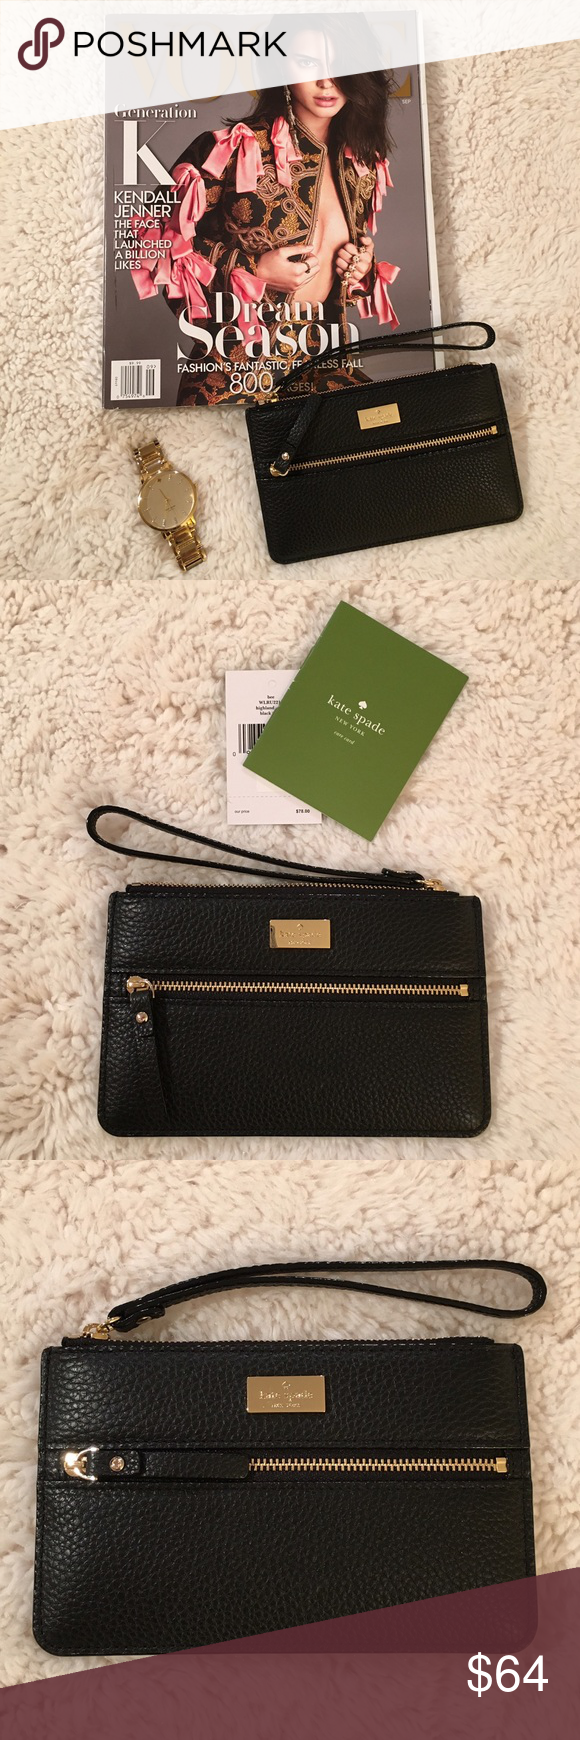 """Kate Spade Wristlet The perfect holiday gift...a chic Kate Spade Wristlet. This wristlet has a top zipper and a front zipper with pocket. The dimensions are 7""""L x 4""""W. The color is black and the interior lining is black. The fabric is a pebbled looking leather. Can fit most phones, money, keys and credit cards. New and never used. kate spade Bags Clutches & Wristlets"""